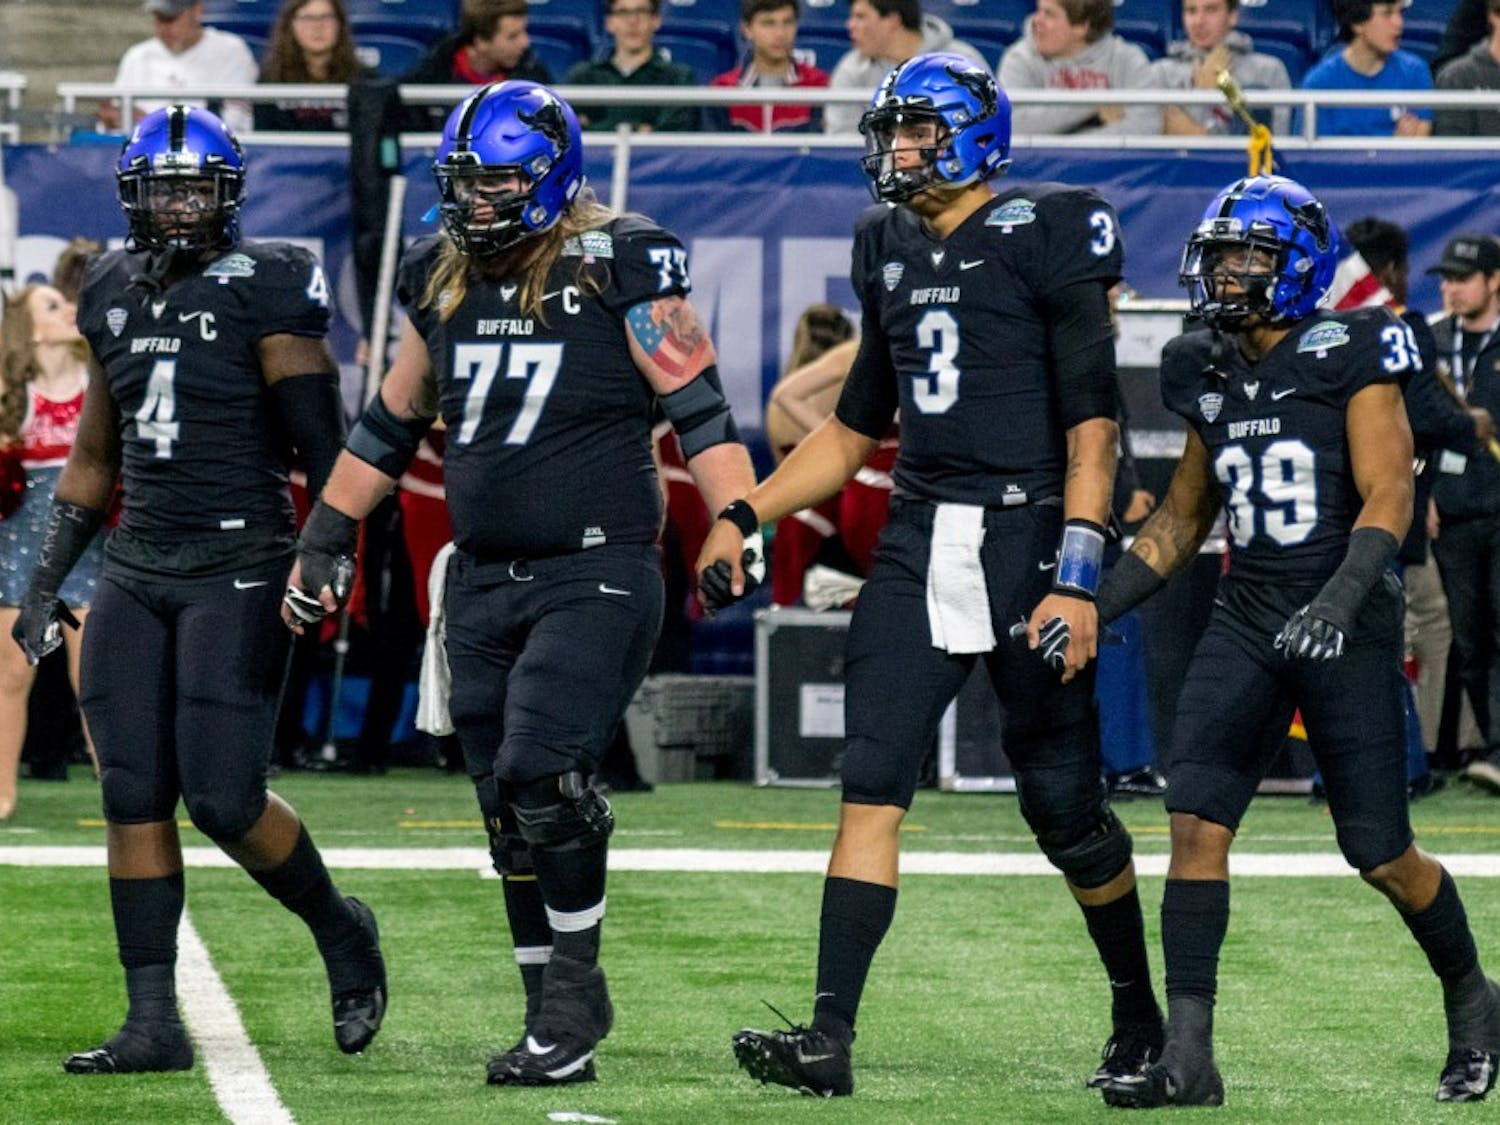 Captains of the UB football team including Tyree Jackson (3) and Cameron Lewis (39) walk onto the field at the MAC Championship game. Jackson and Lewis both became members of the Bills this weekend.